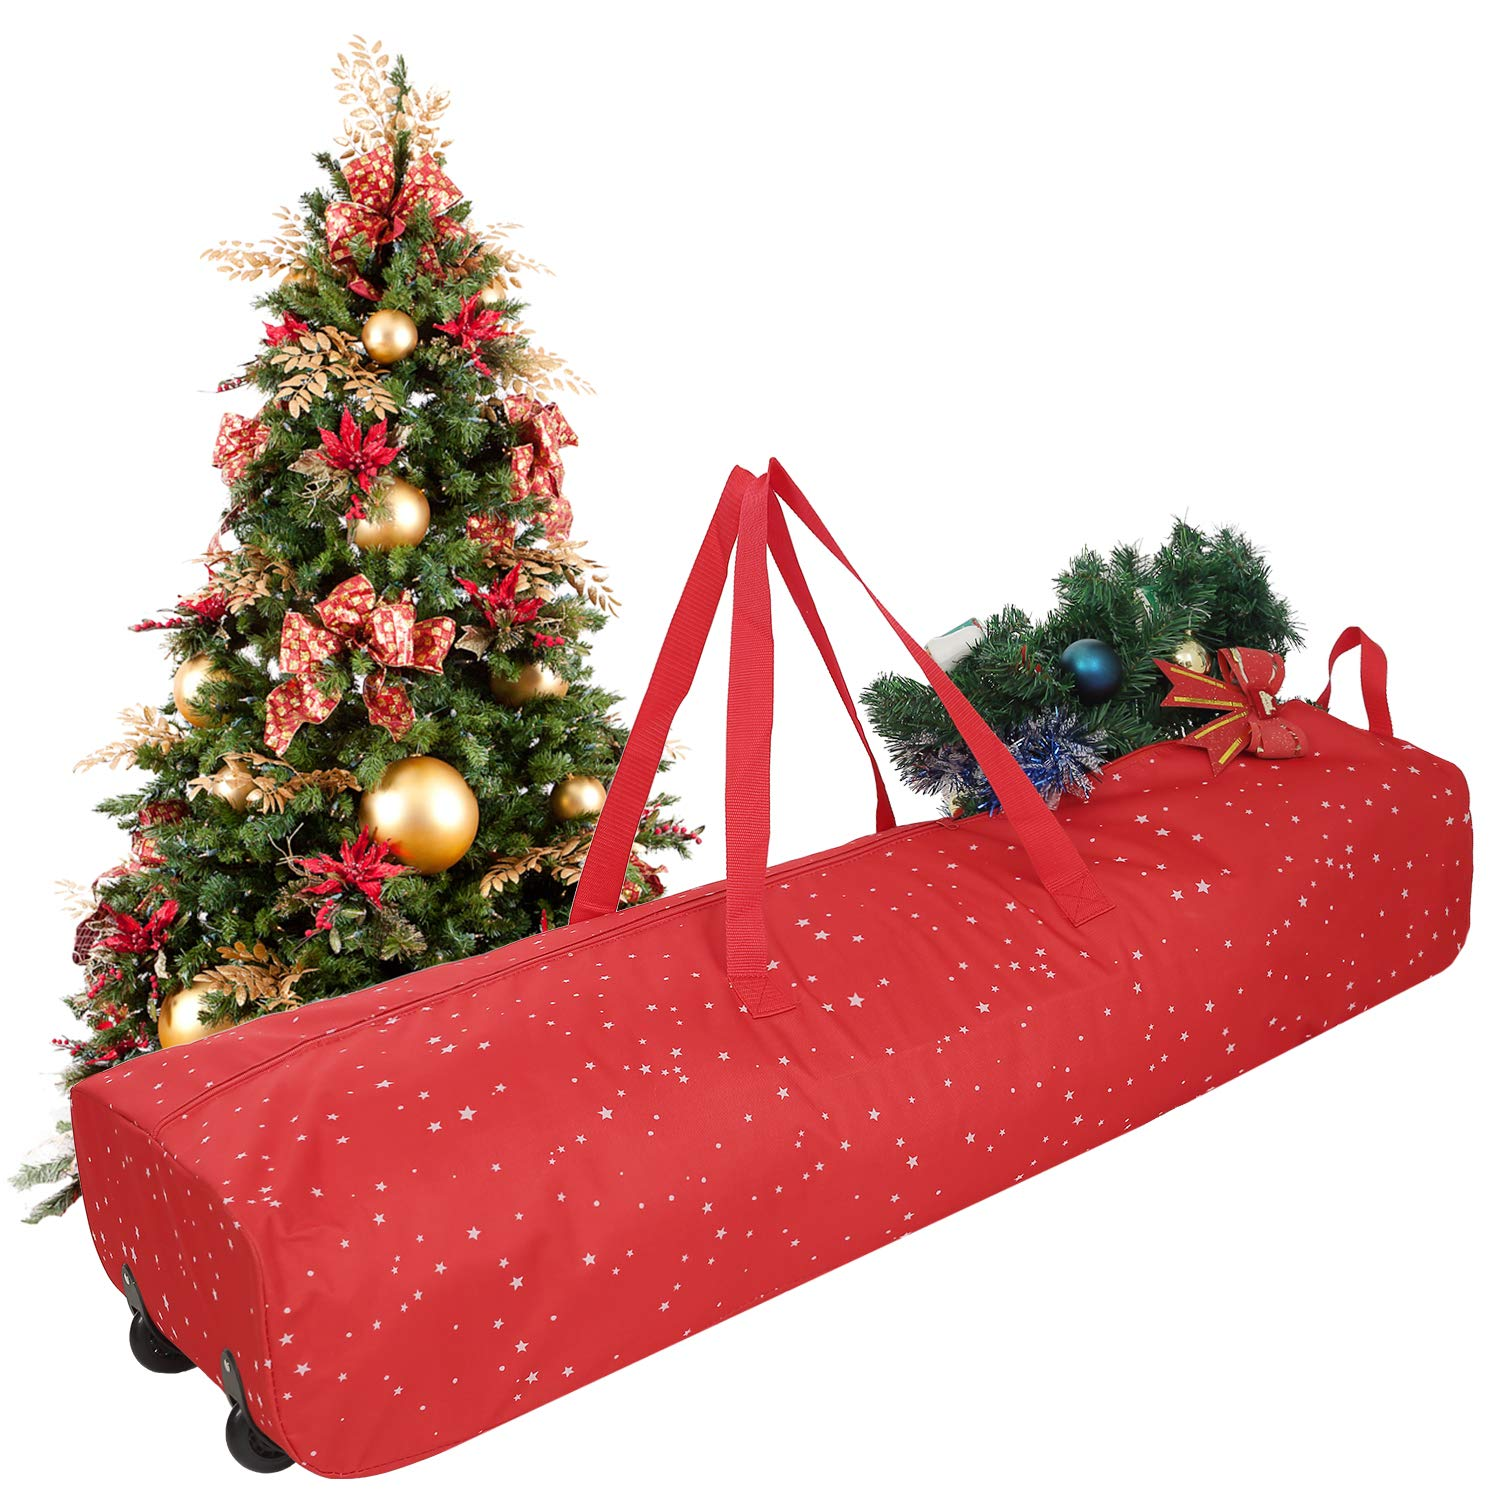 OWNFUN Christmas Tree Storage Bag 600D Oxford Red Bag with Protective Zippered Wheels 4 Feet -Holds Red